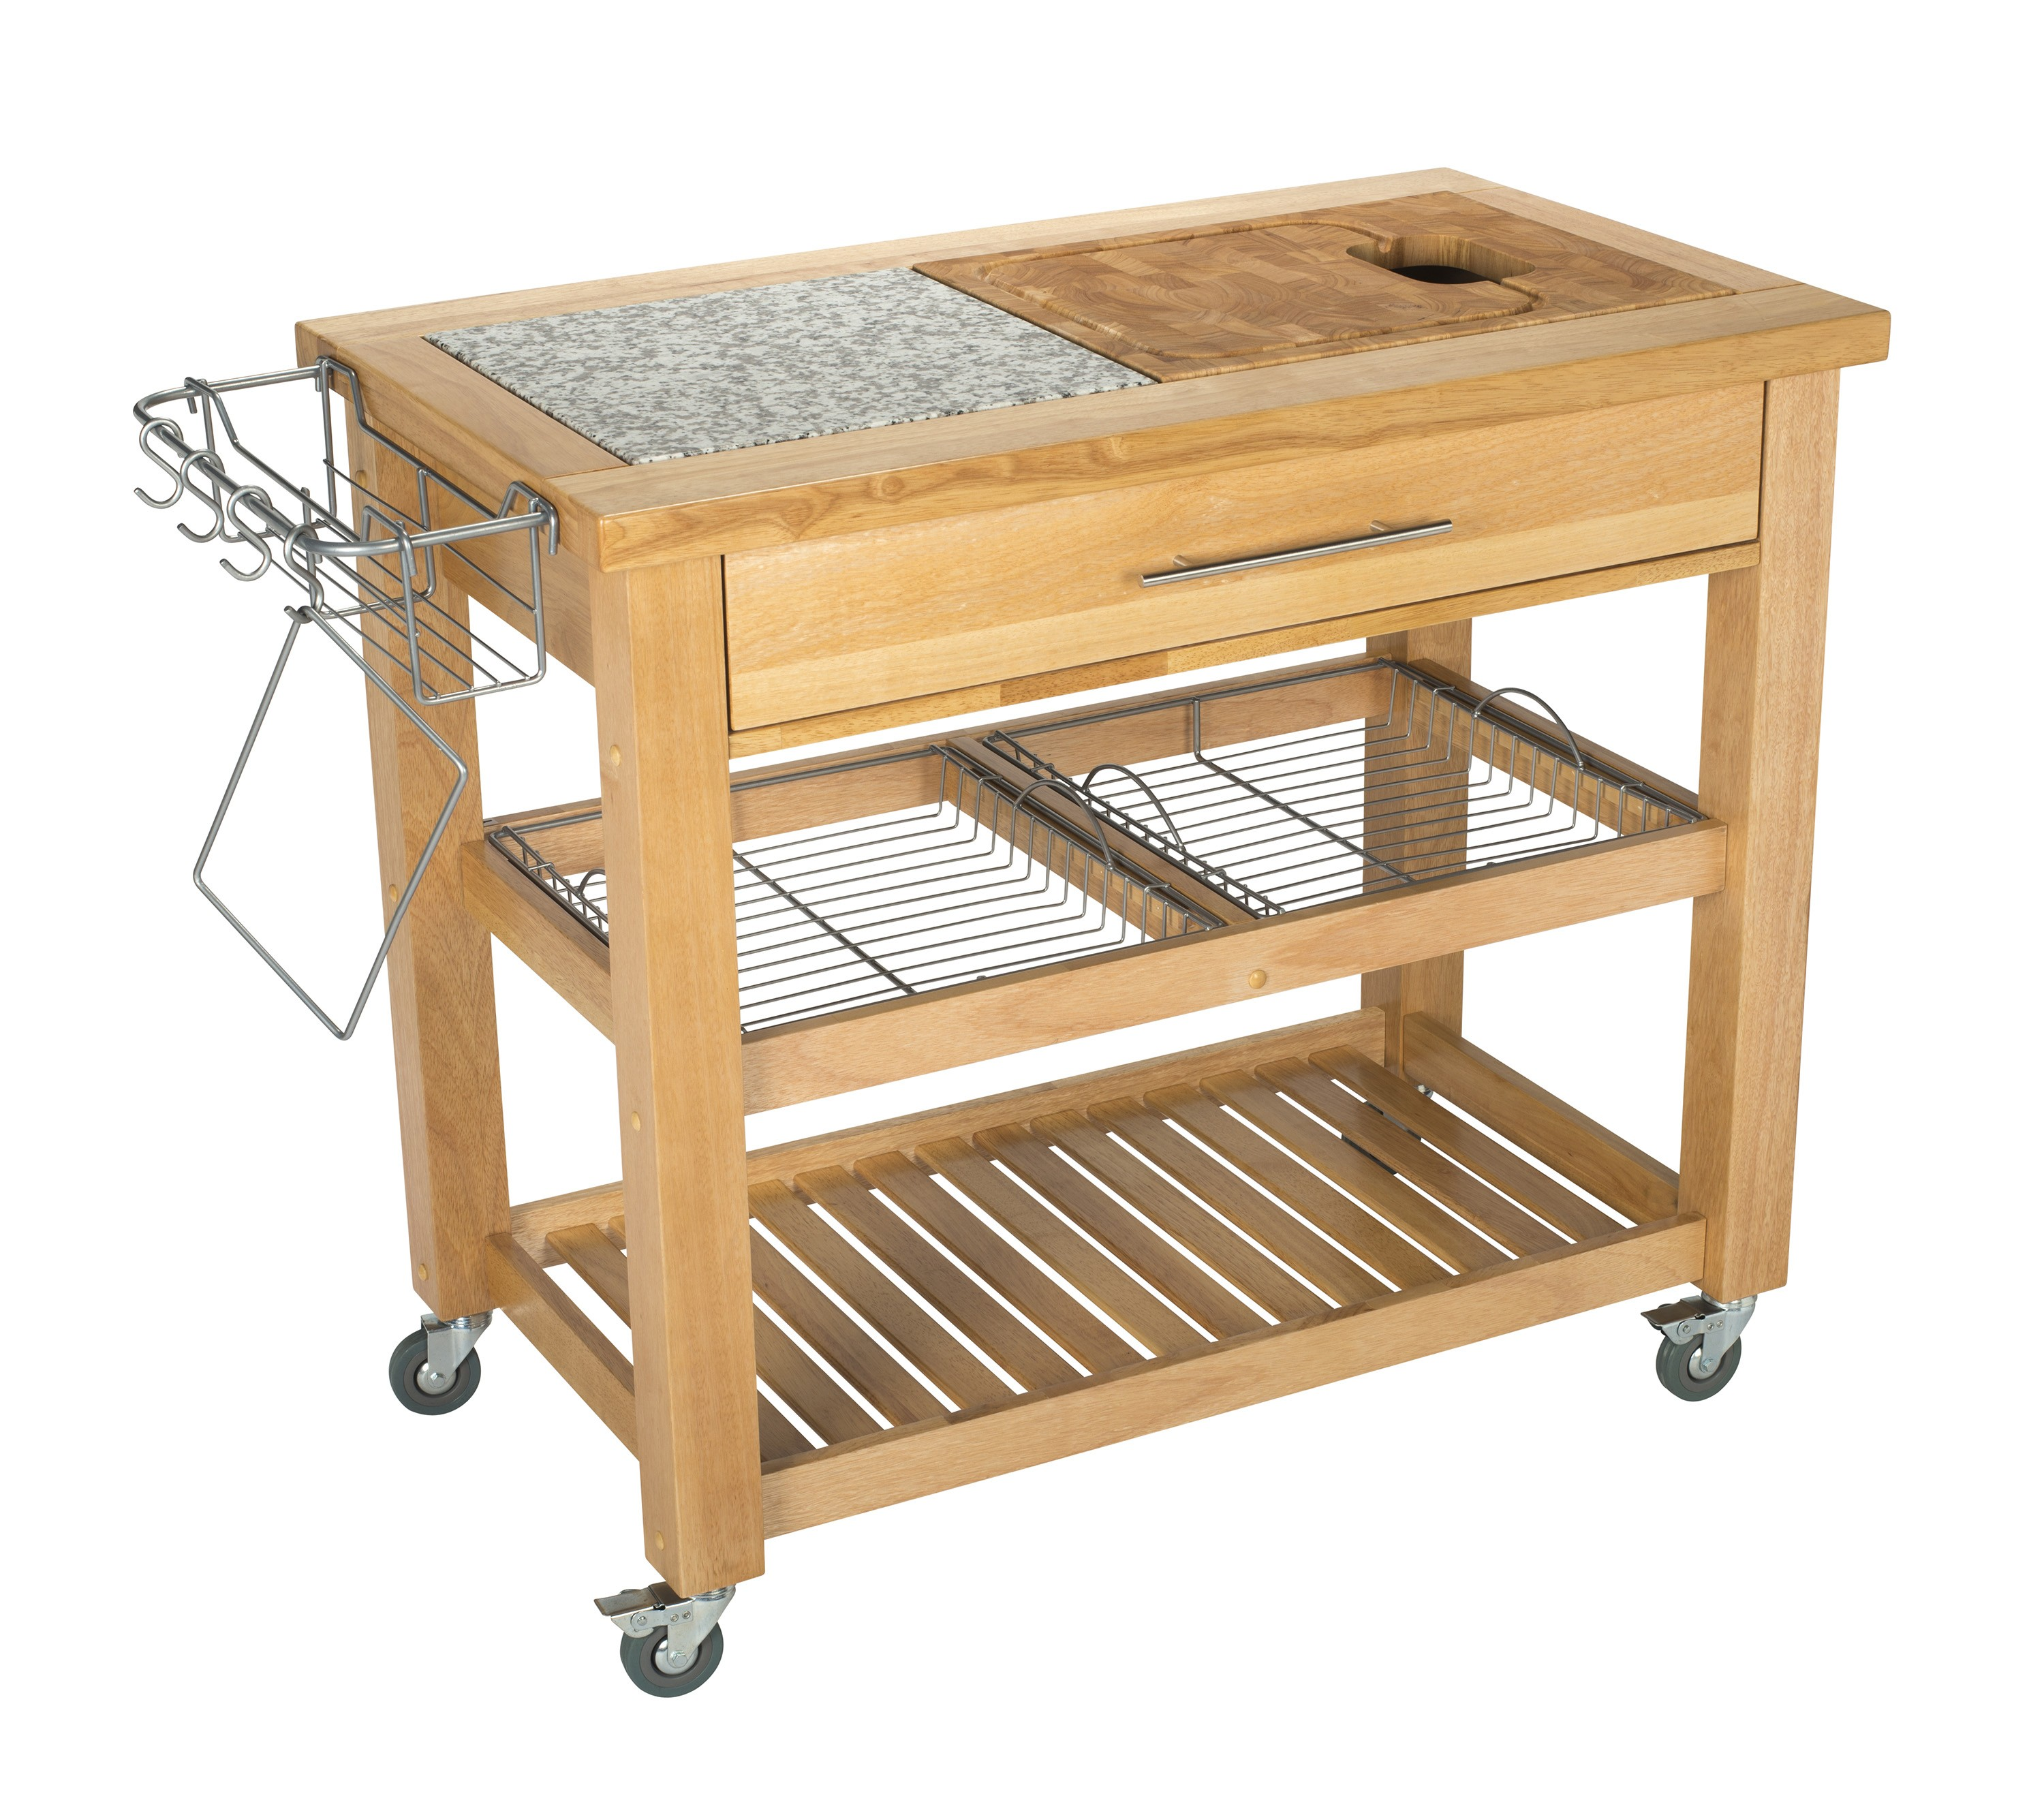 Chris & Chris Granite & Rubberwood Work Station - 40